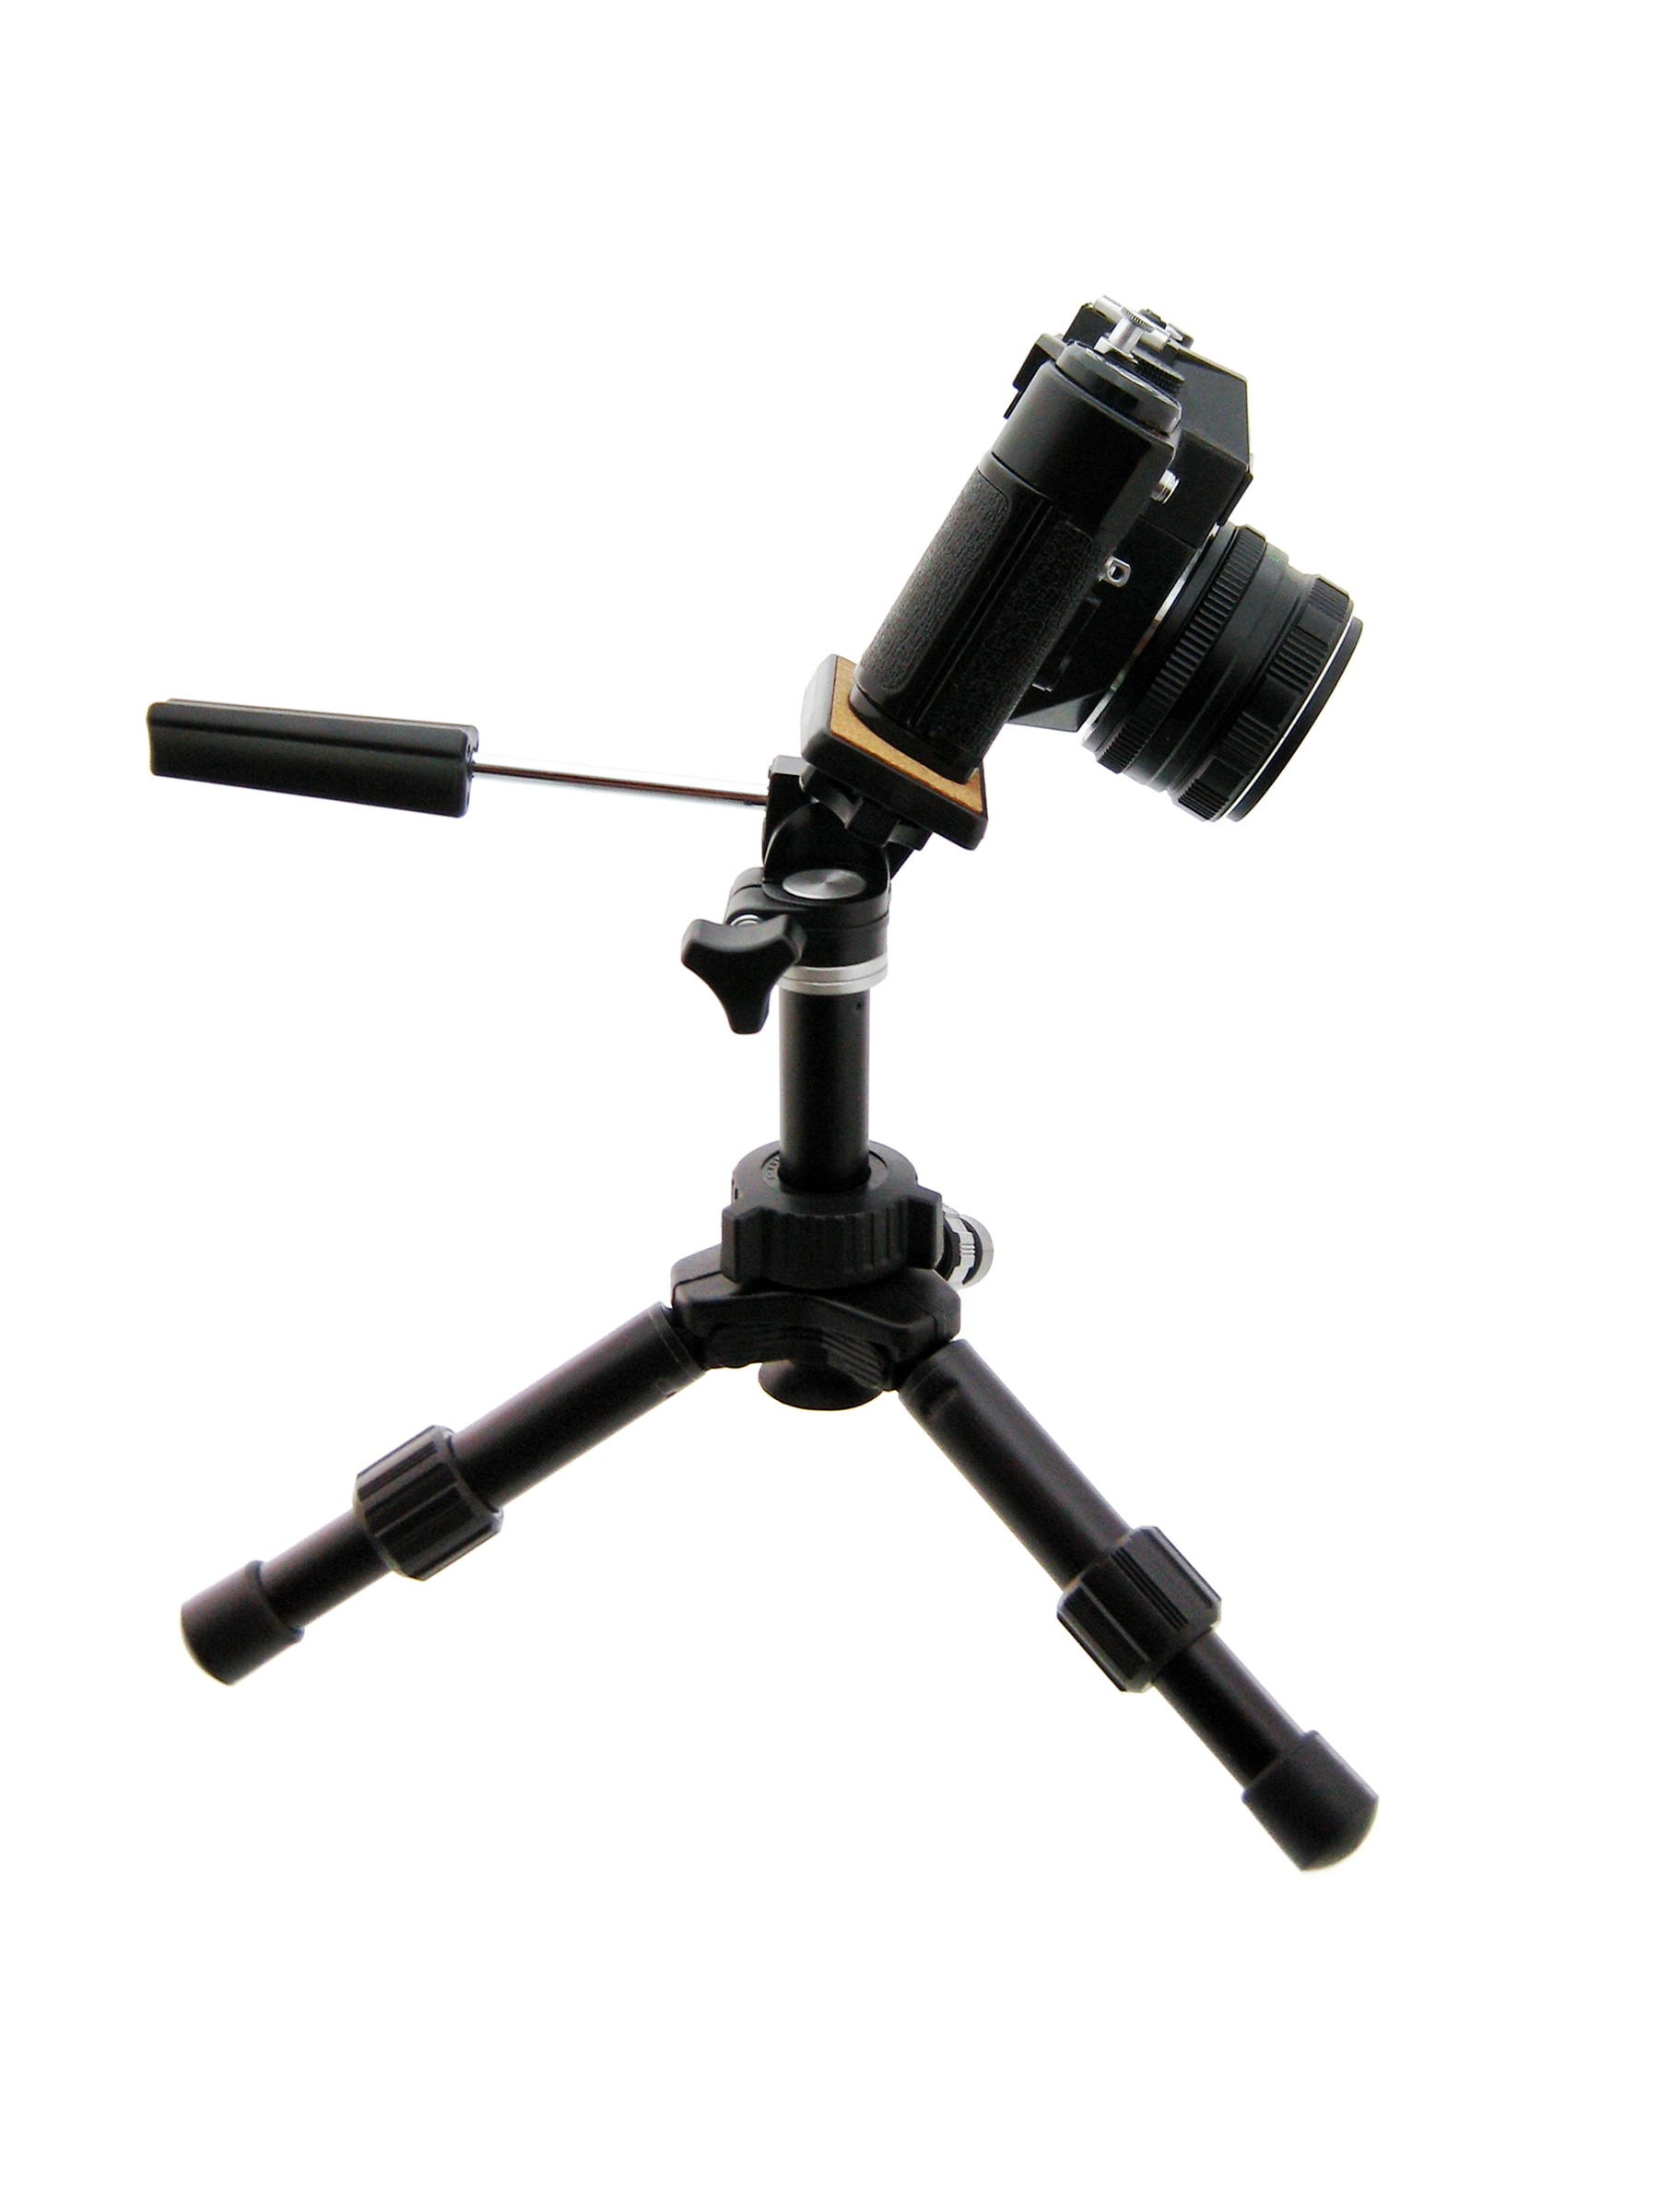 Tripod with camera, Photography, Photographing, Photographer, Shoot, HQ Photo